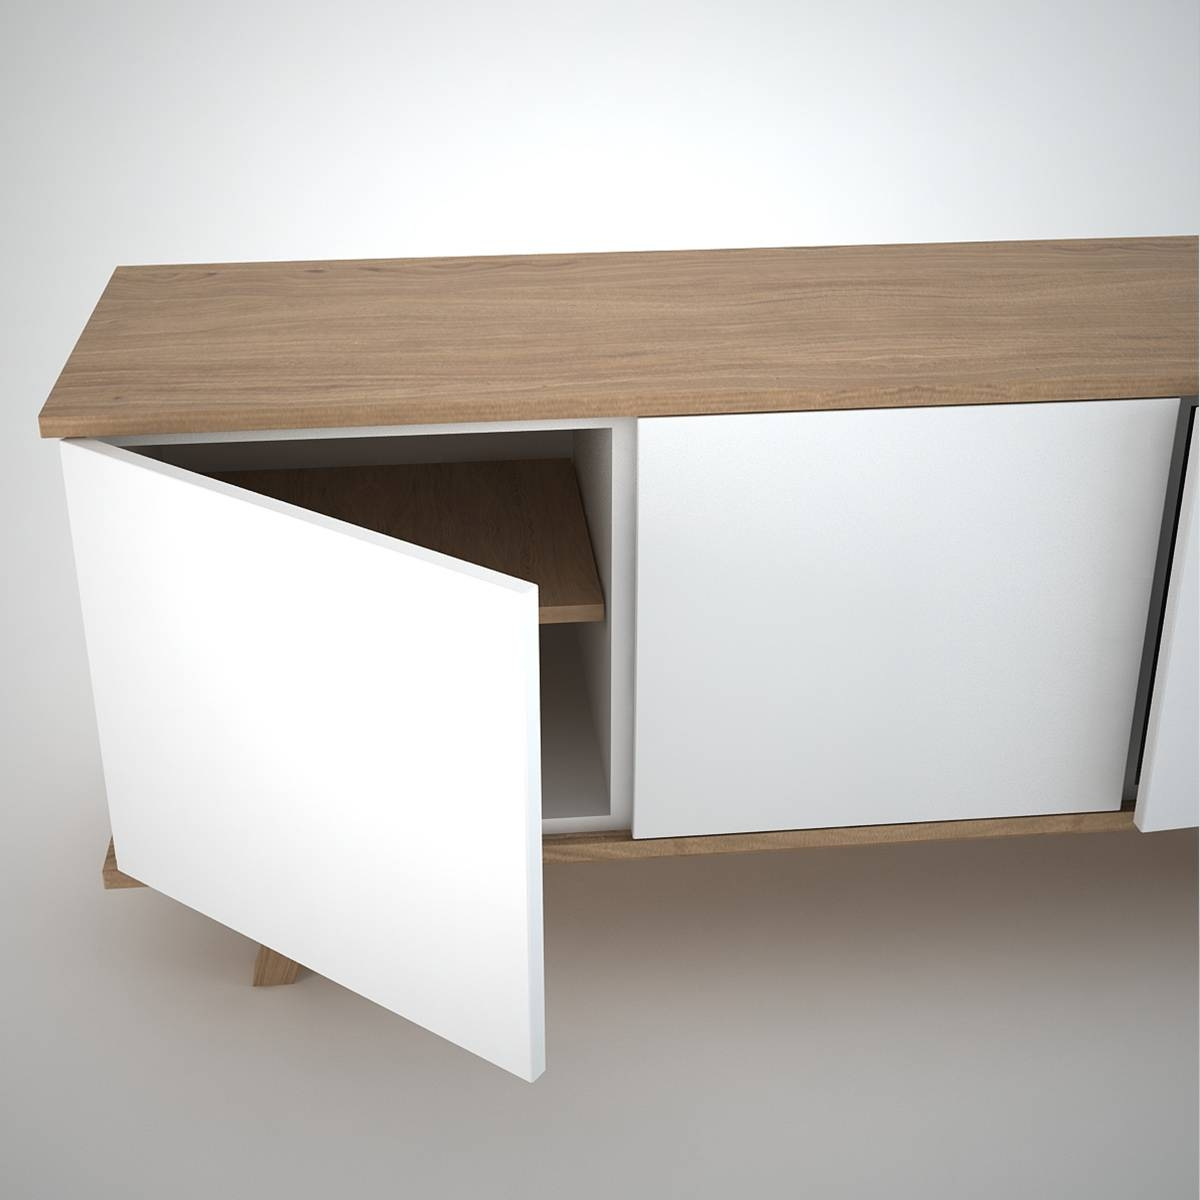 Ottawa Sideboard (3) White - Join Furniture inside Contemporary White Sideboards (Image 17 of 30)